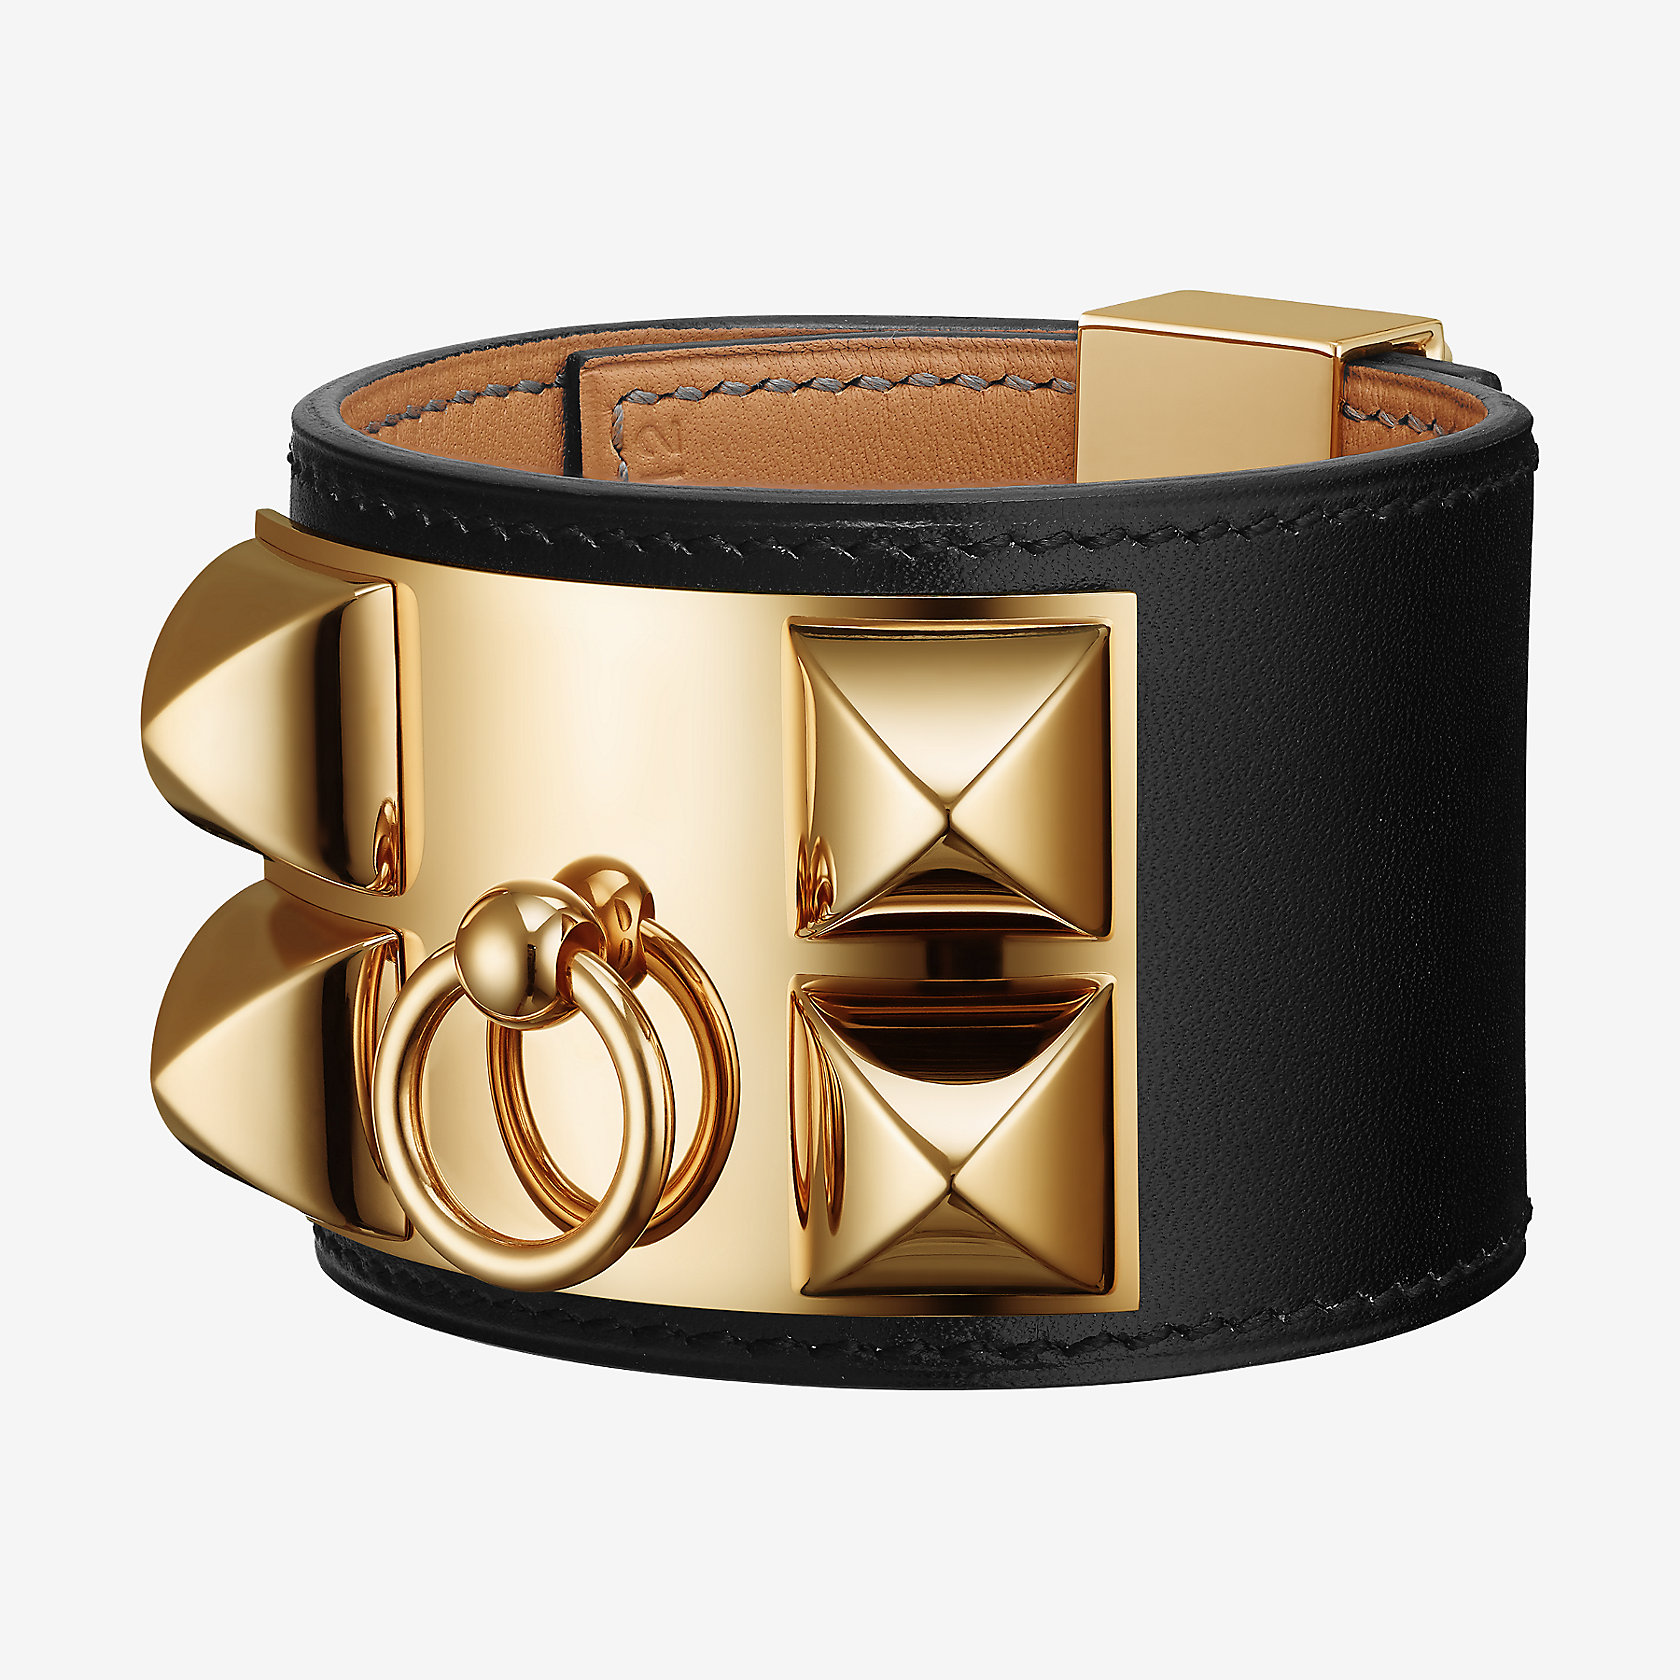 Hermes collier de chien bracelet Archives - Who Wore What ...